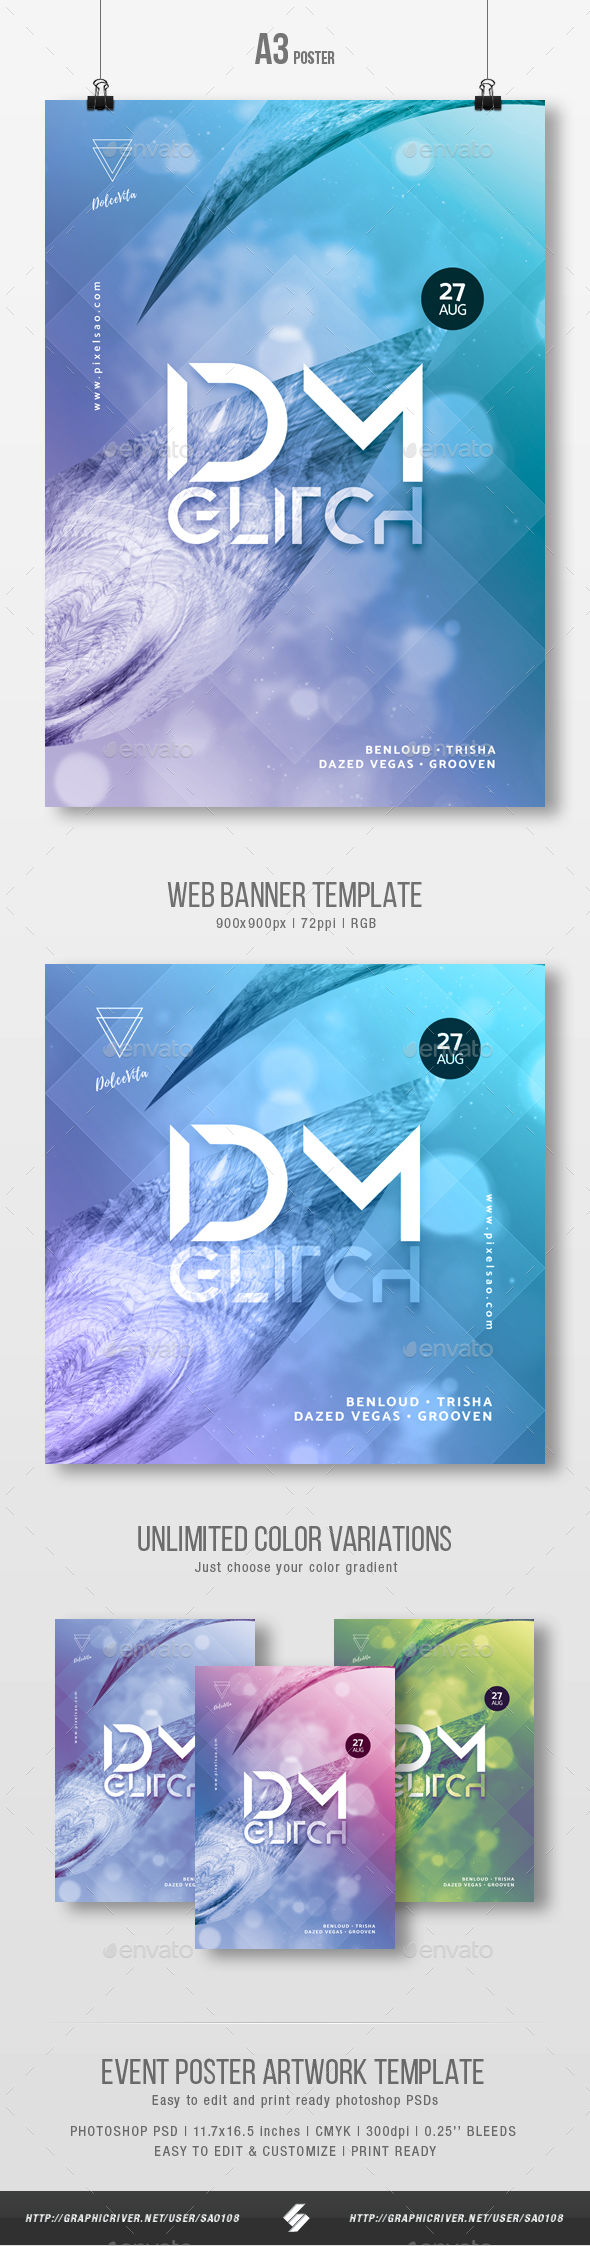 Idm Glitch - Abstract Party Flyer / Poster Artwork Template A3 - Clubs & Parties Events